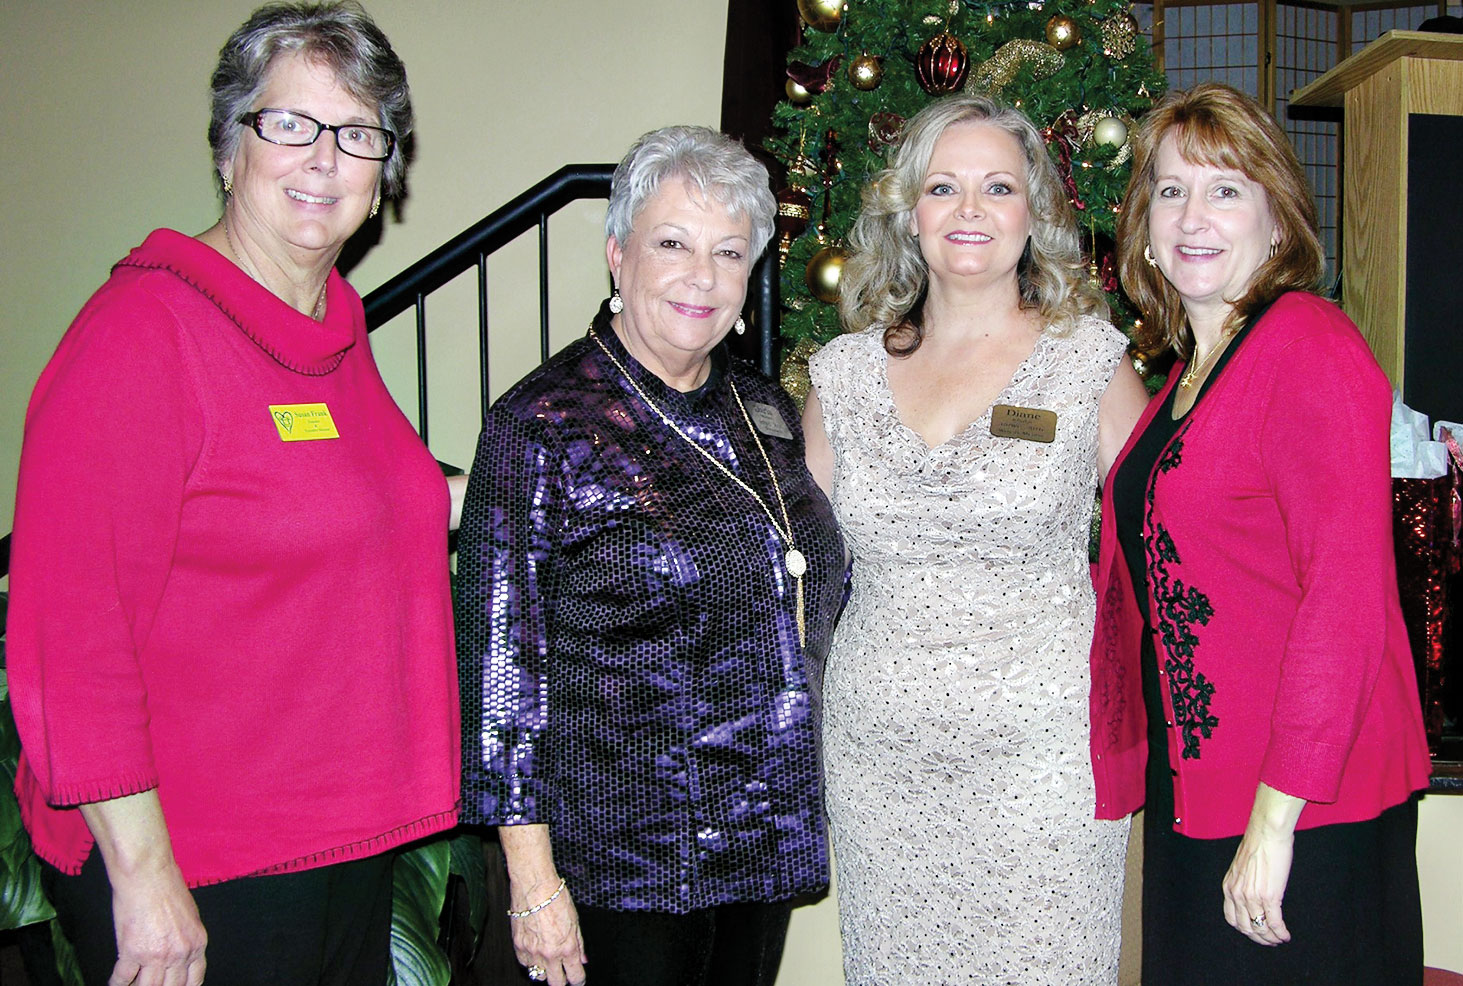 Diane Khalar and Darla Mahan with a representative from the Monsignor King Outreach Center of Denton and Hearts for Homes.